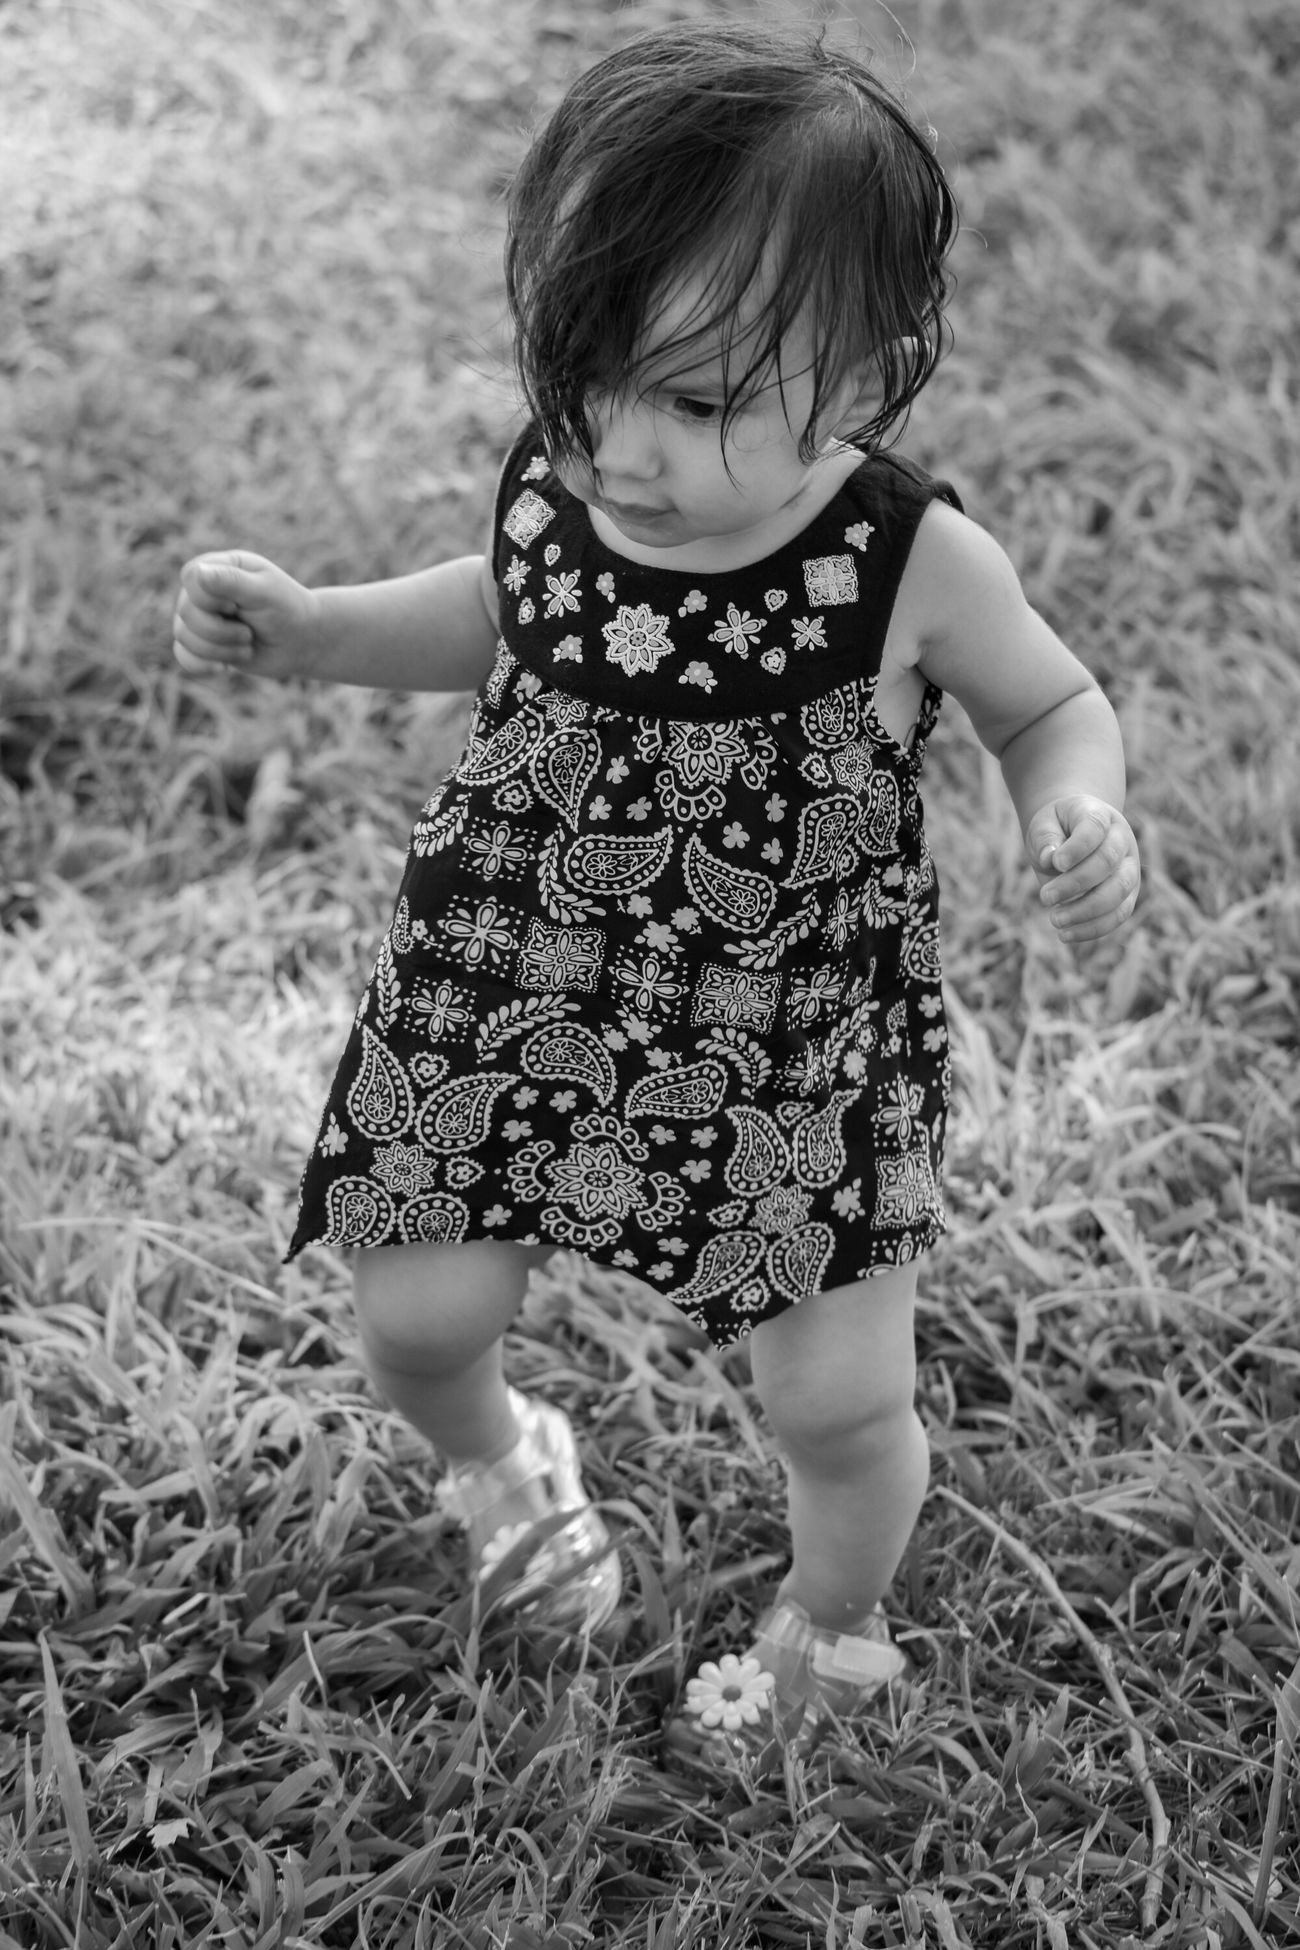 Black And White Portrait Taking Photos Beautiful Baby Children's Portraits MyNeice Lilbabygirl Hello World Photography EyeEm Gallery Blackandwhite